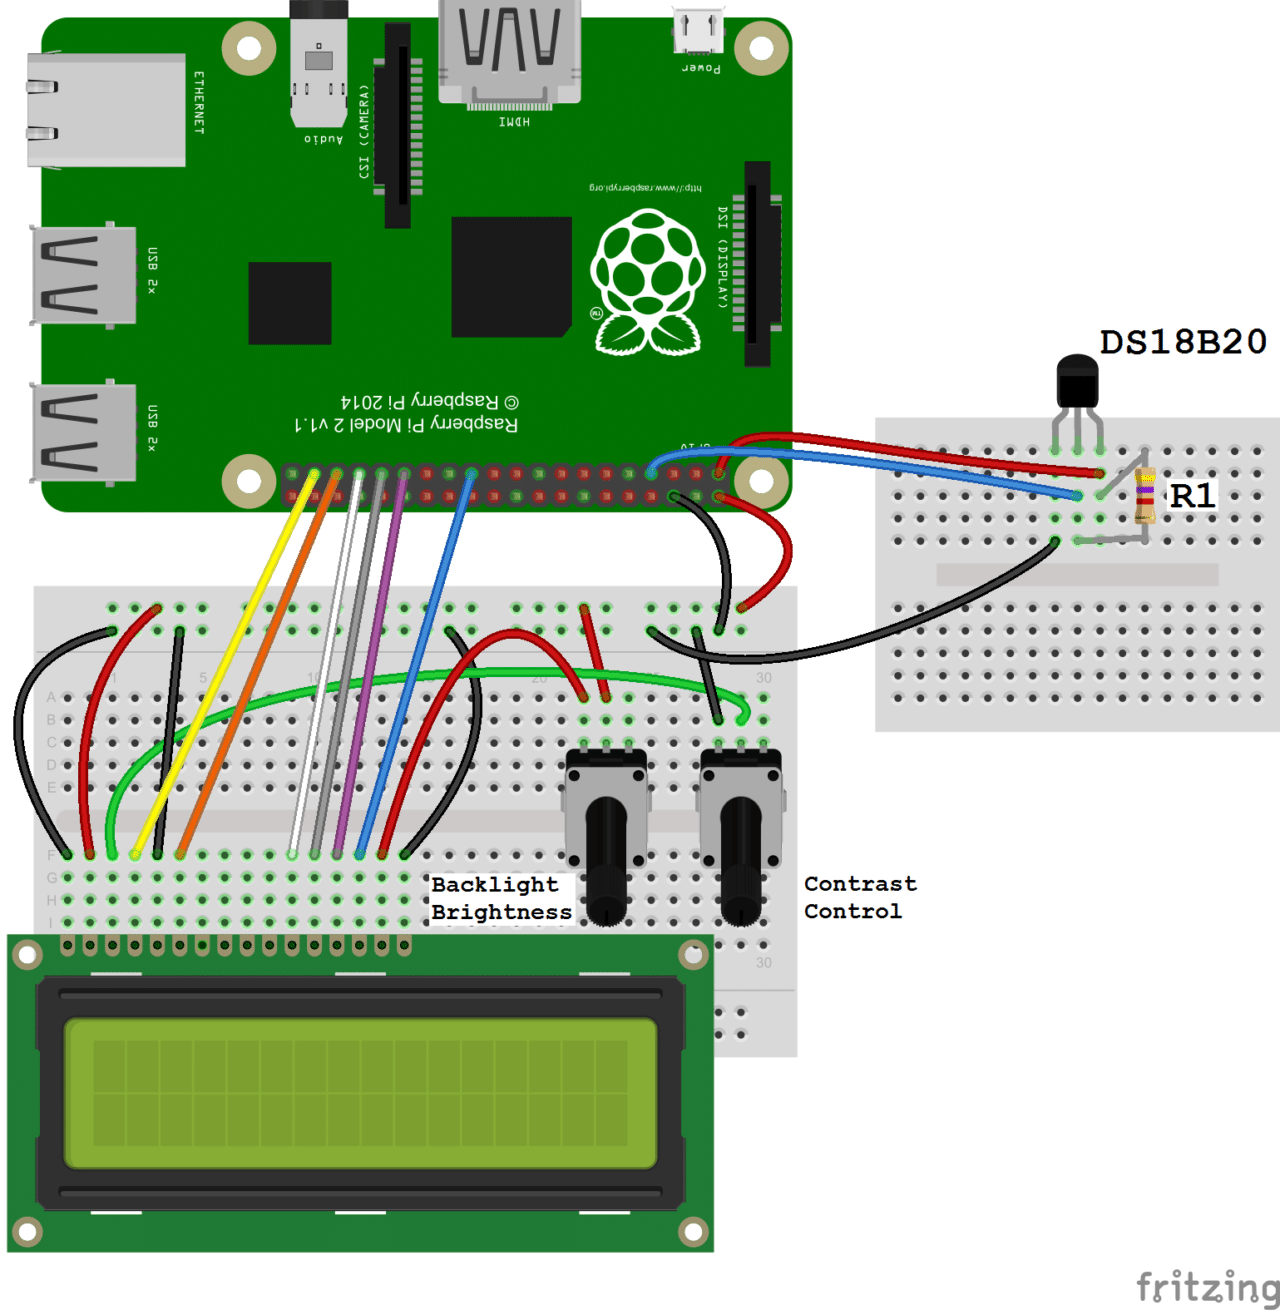 raspberry pi ds18b20 temperature sensor tutorial circuit basics r1 4 7k ohm or 10k ohm resistor